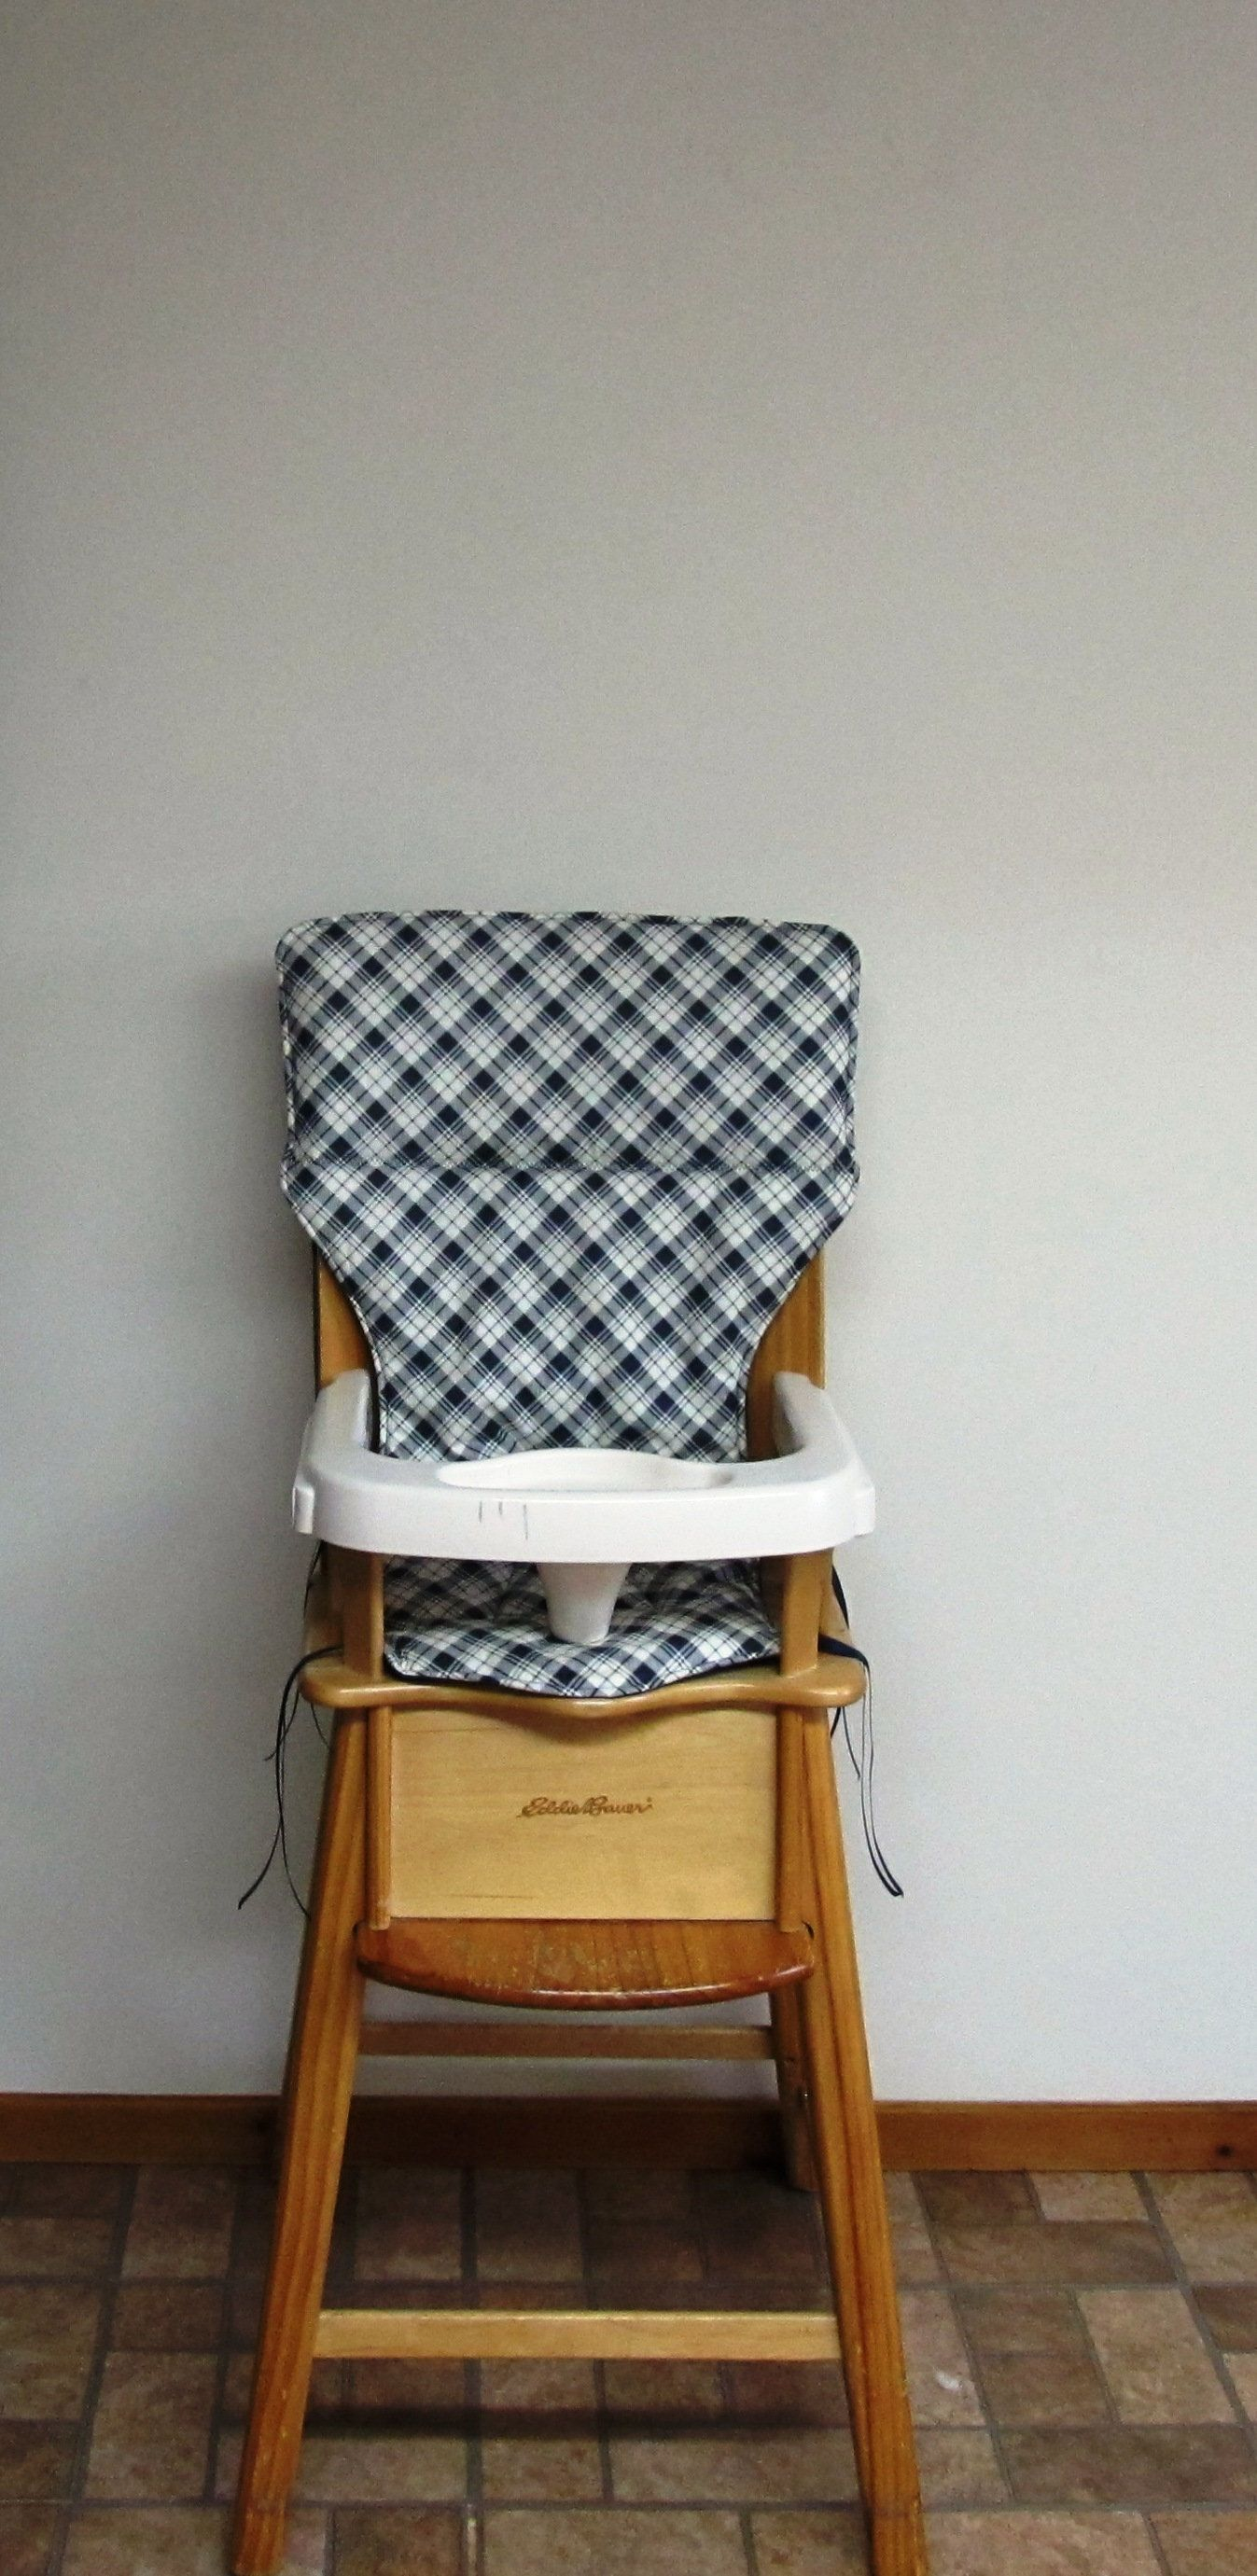 Eddie Bauer Replacement High Chair Cover Cotton Fabric Wooden